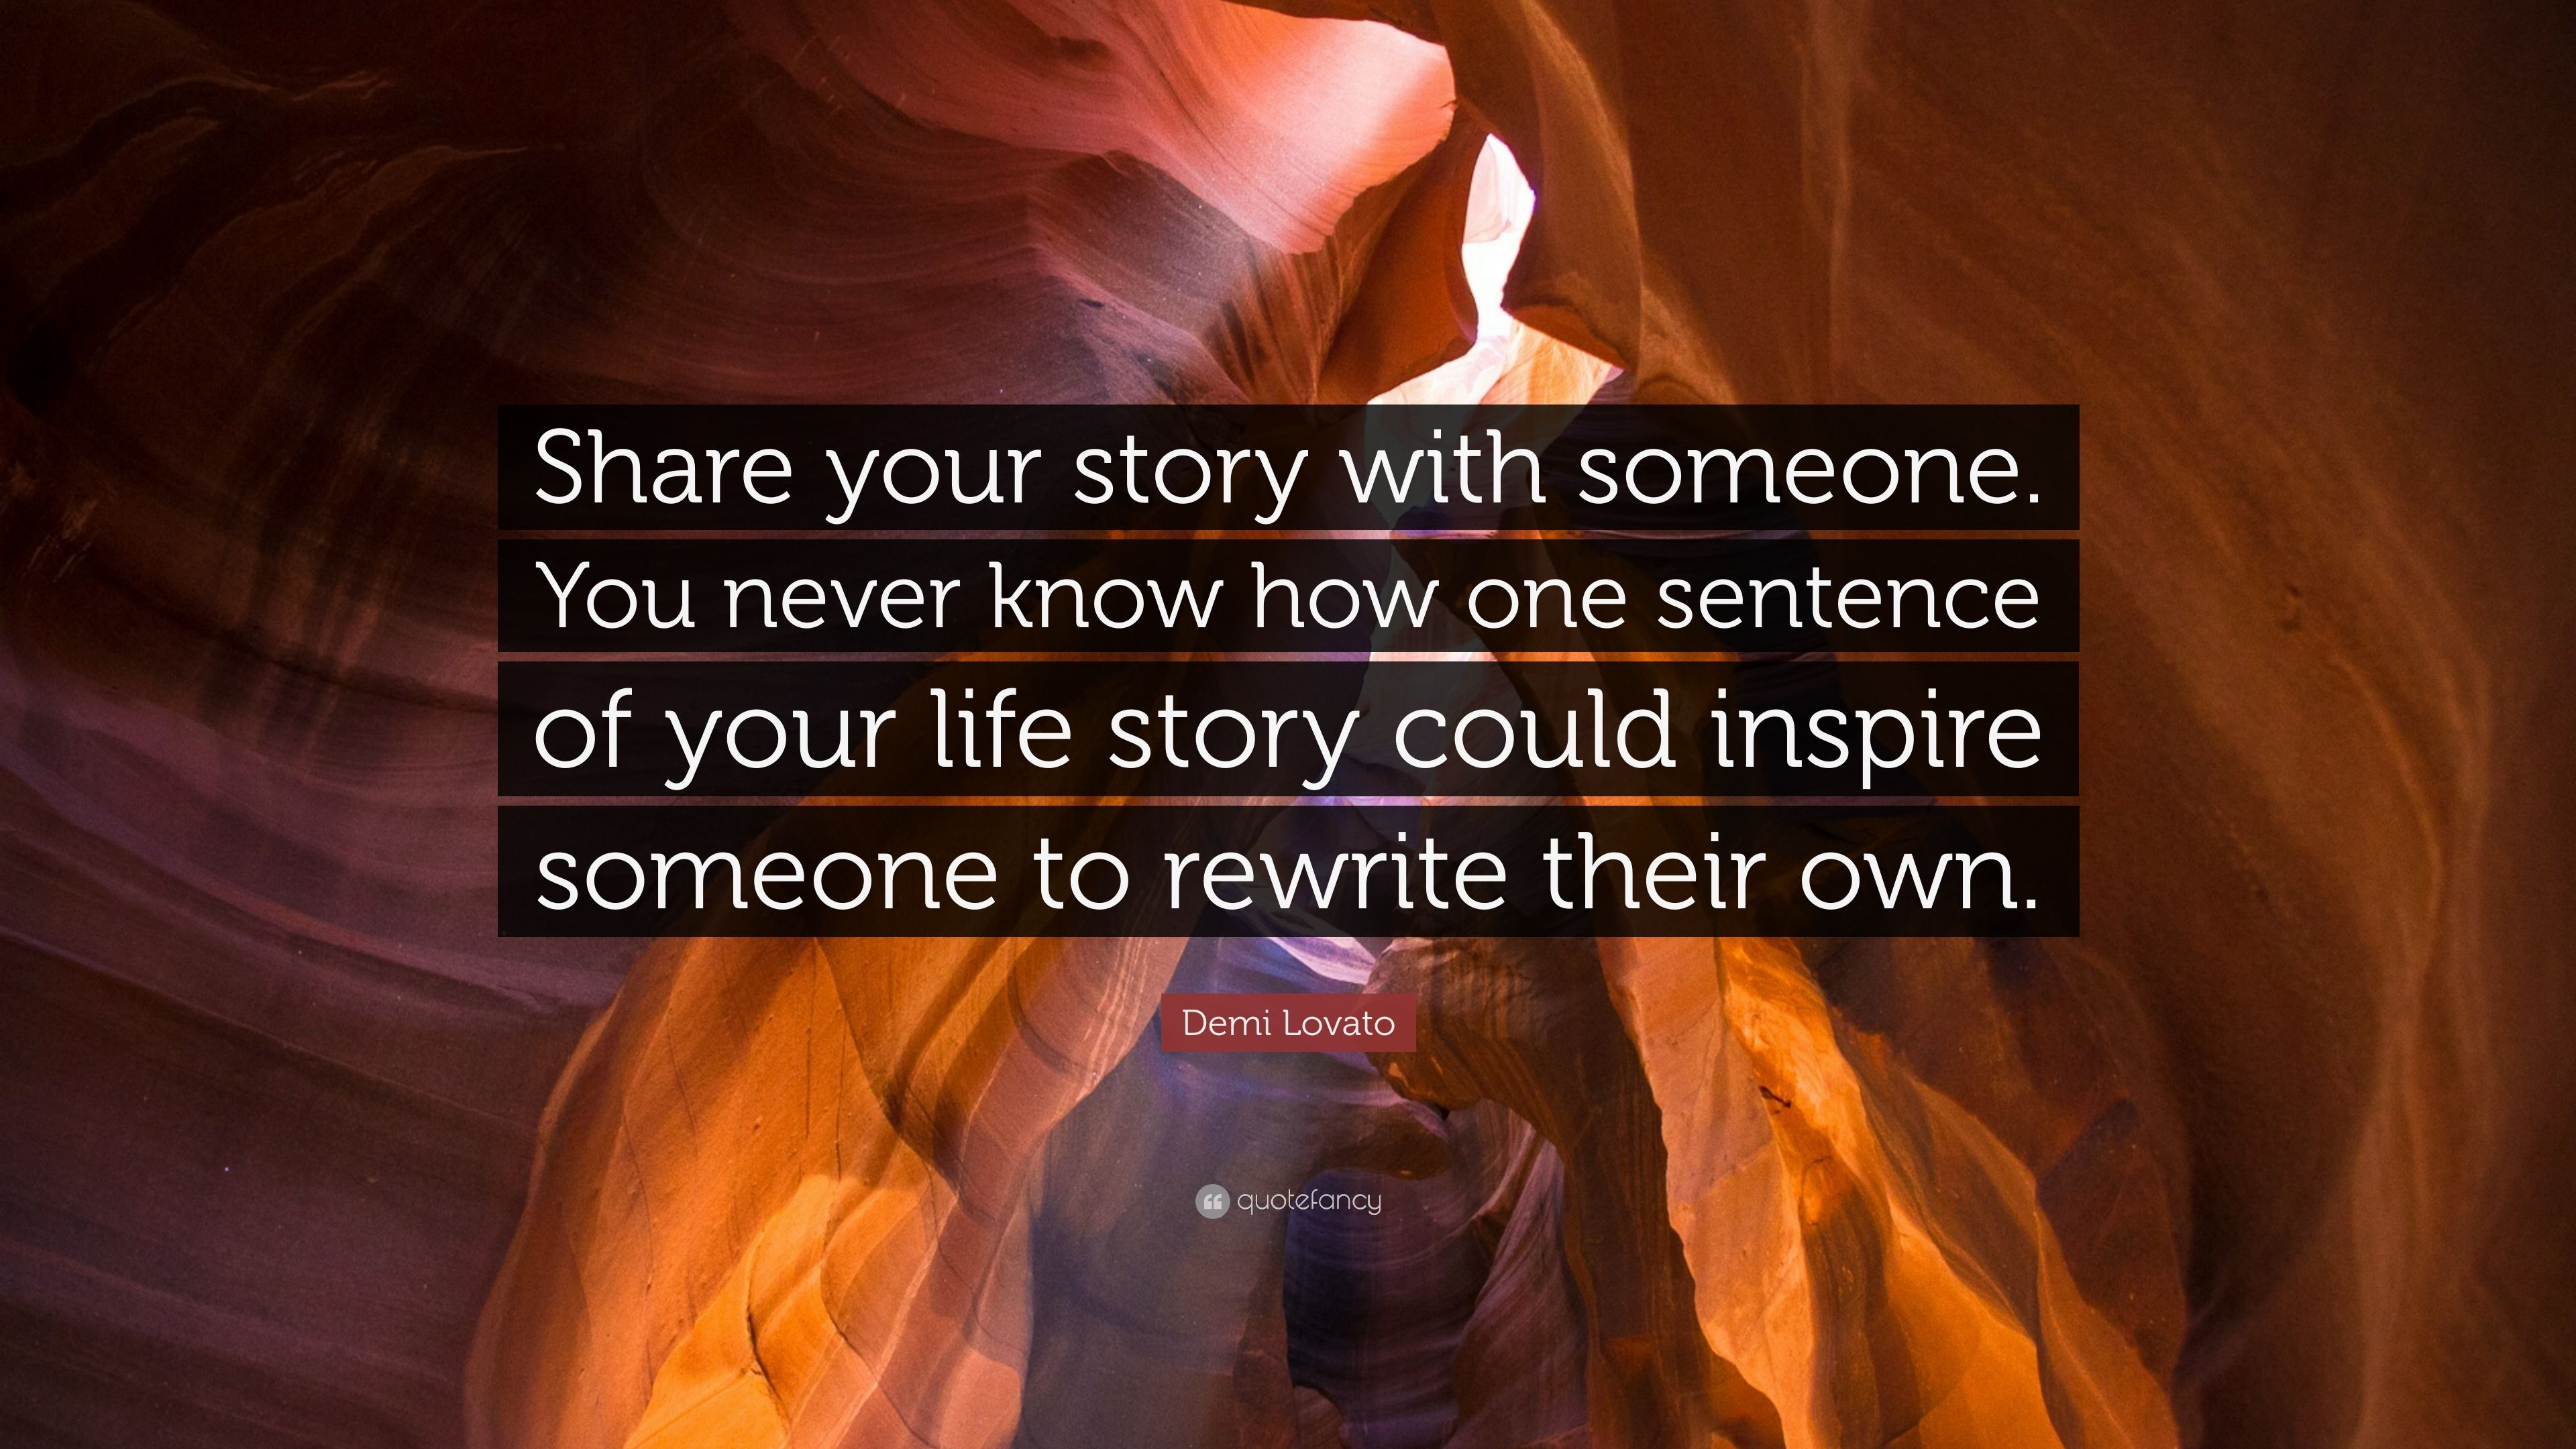 How to get someone to write your life story